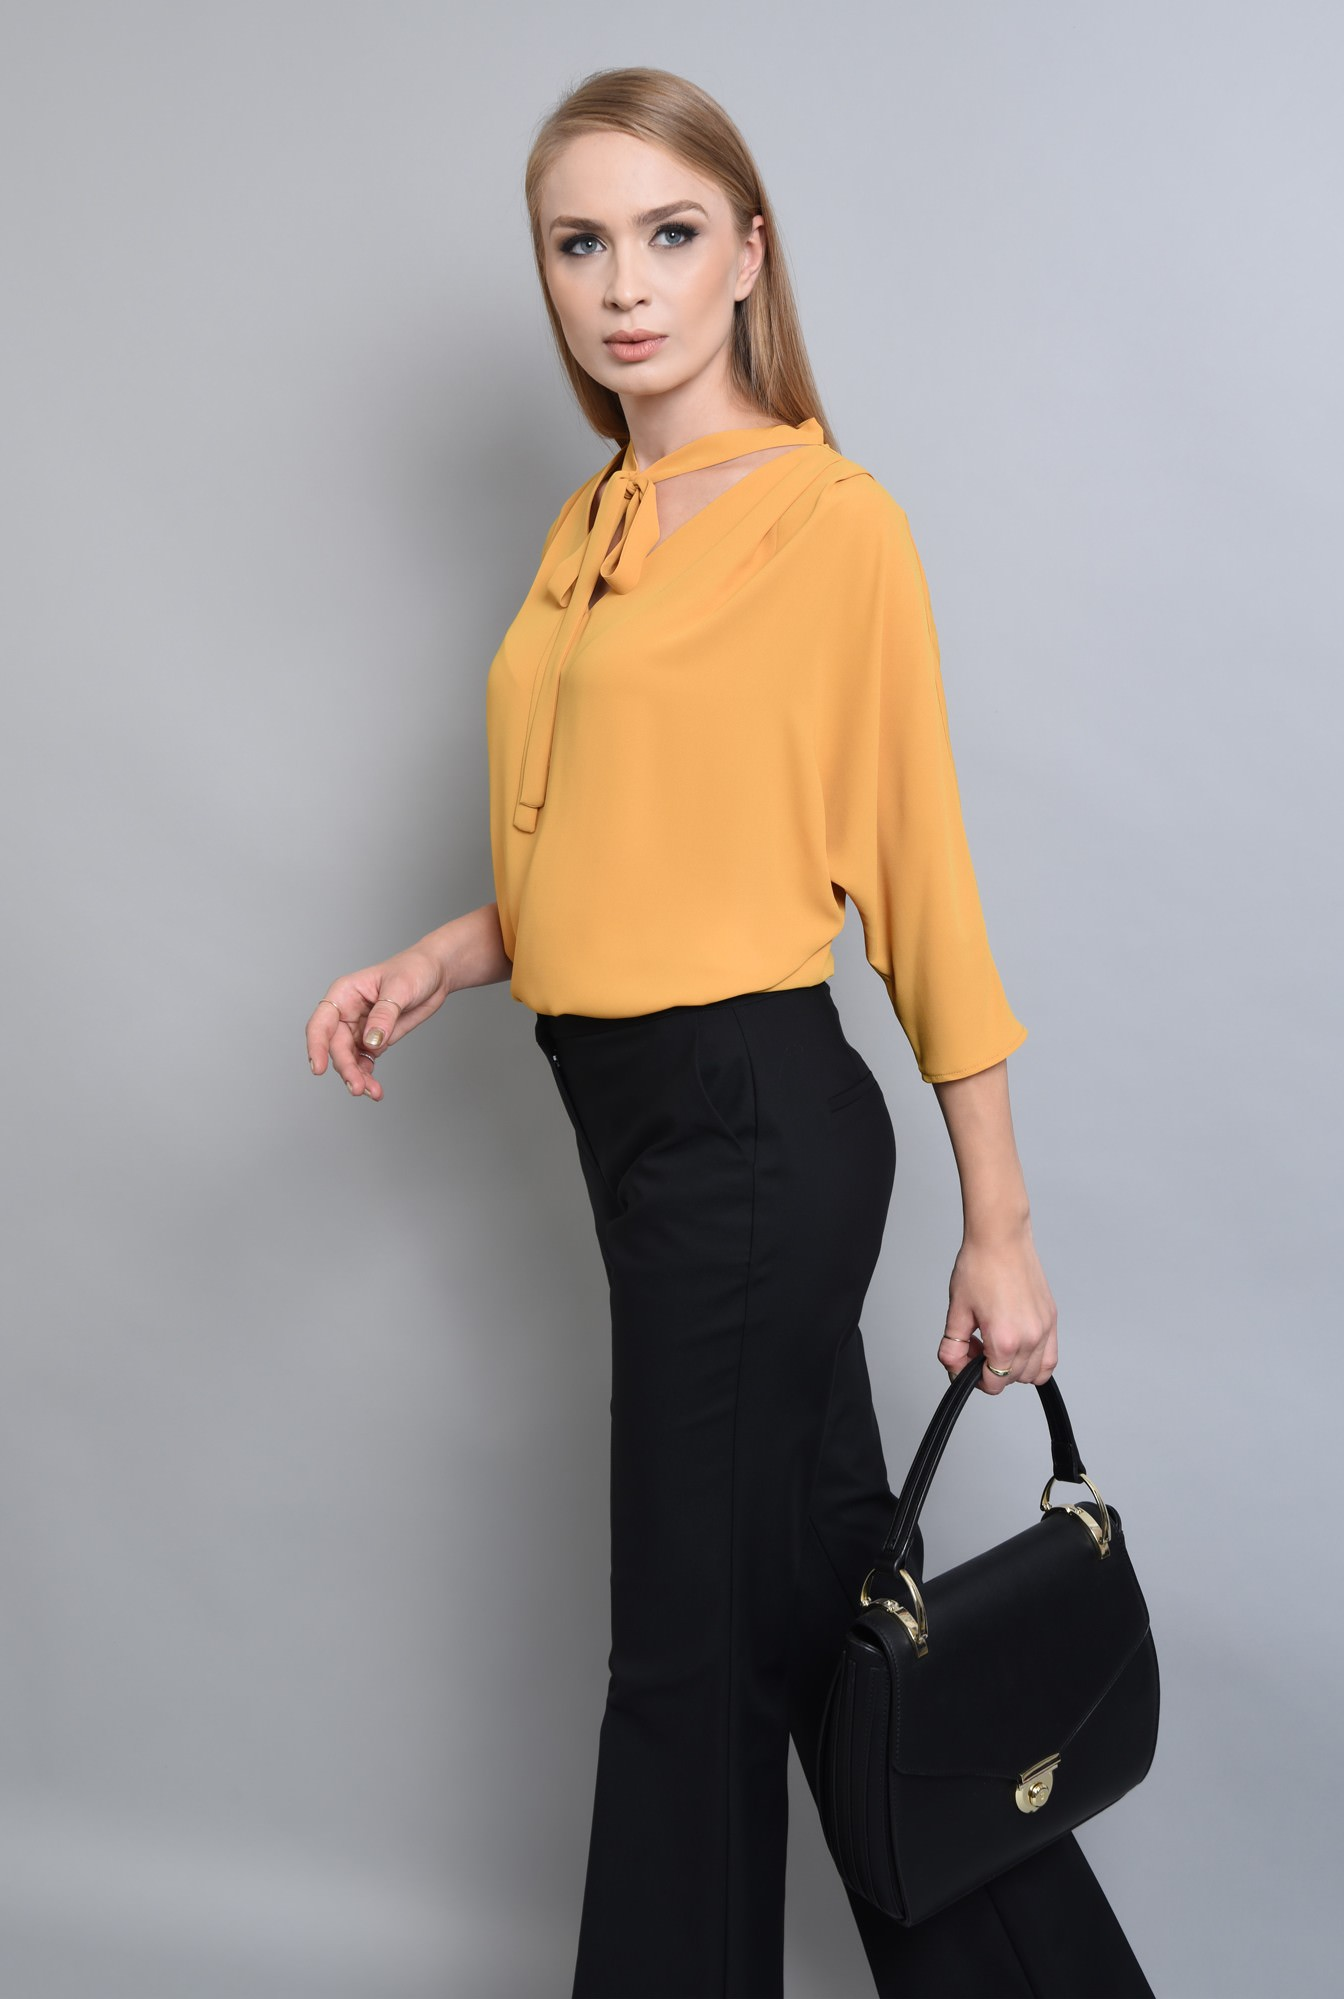 2 - BLUZA OFFICE BL 291-MUSTAR